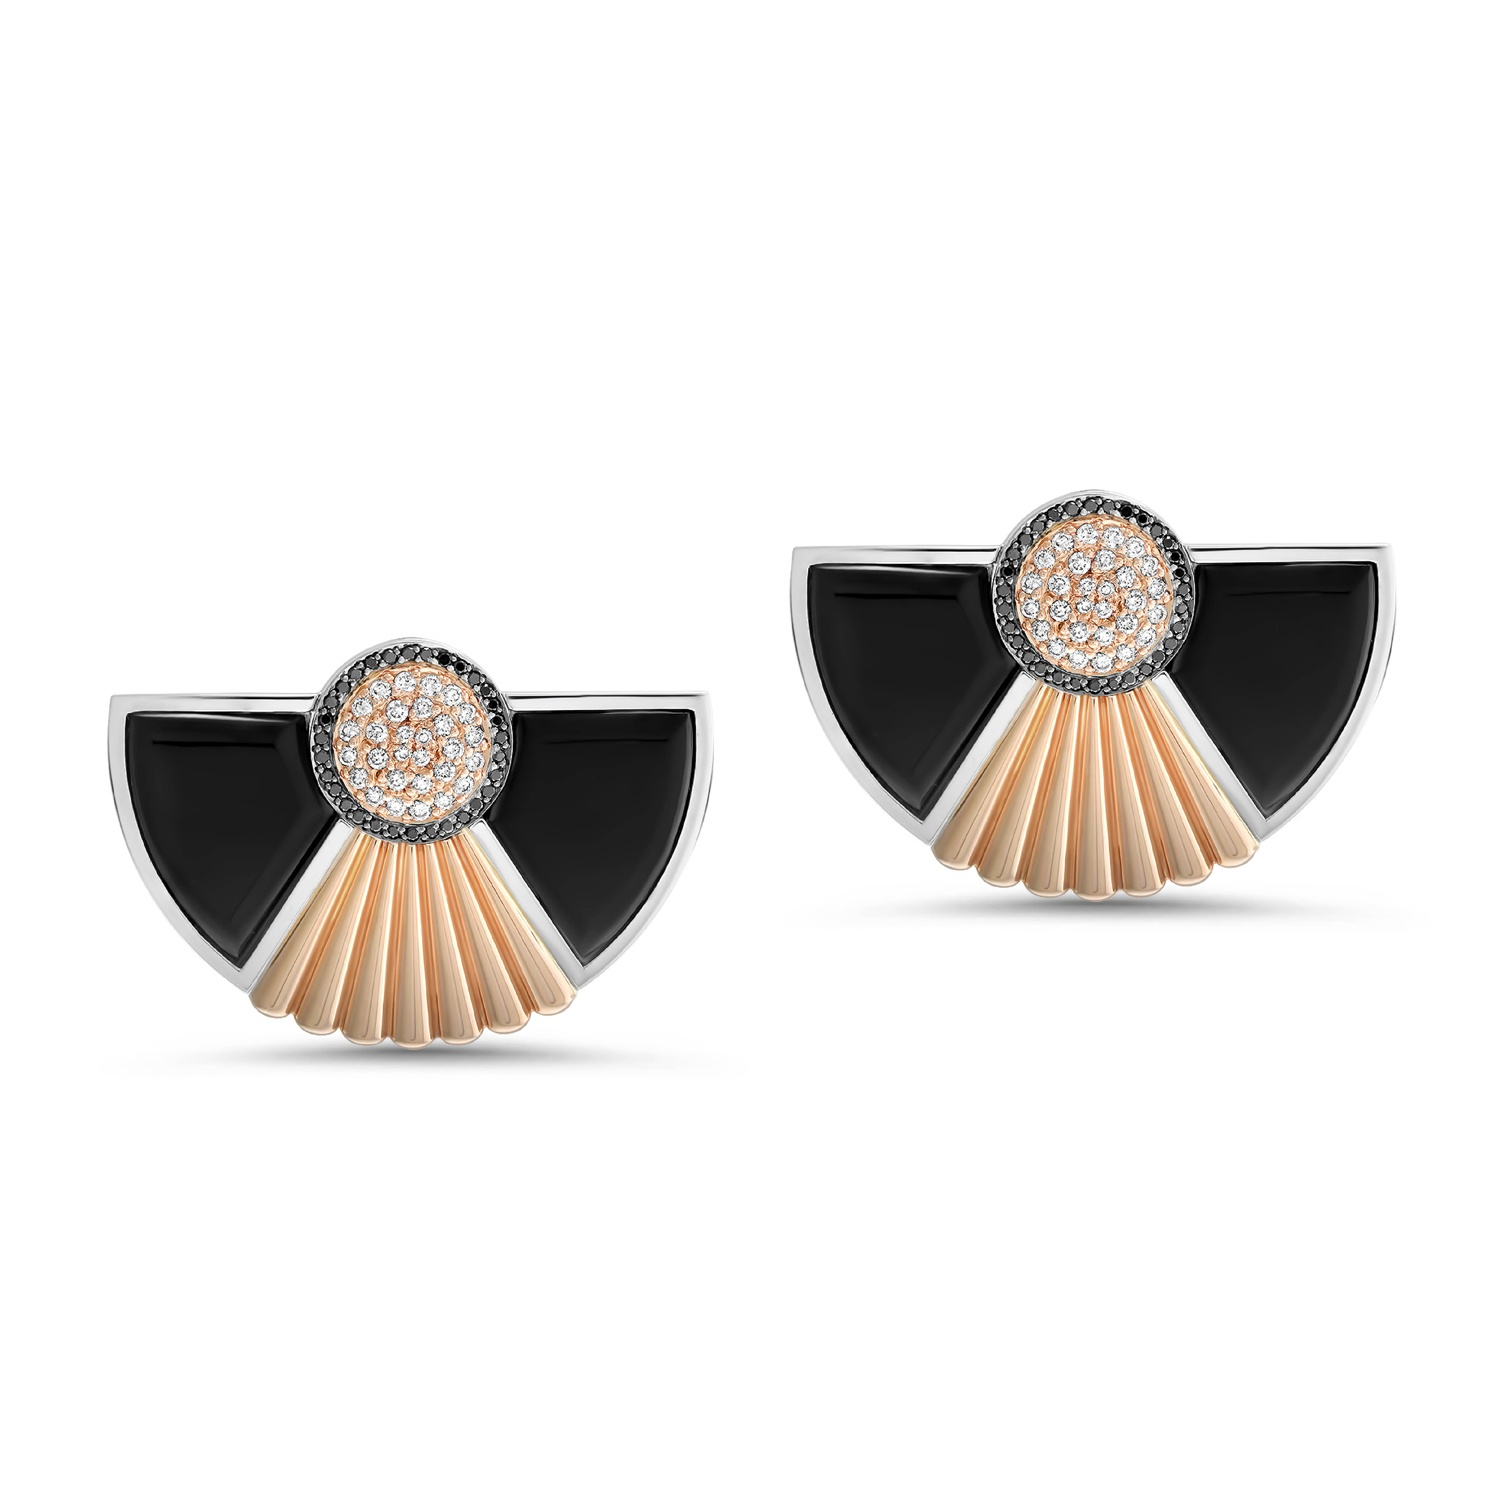 Art Deco Style Cleopatra Earrings In 18k White And Rose Gold By Fairfax Roberts